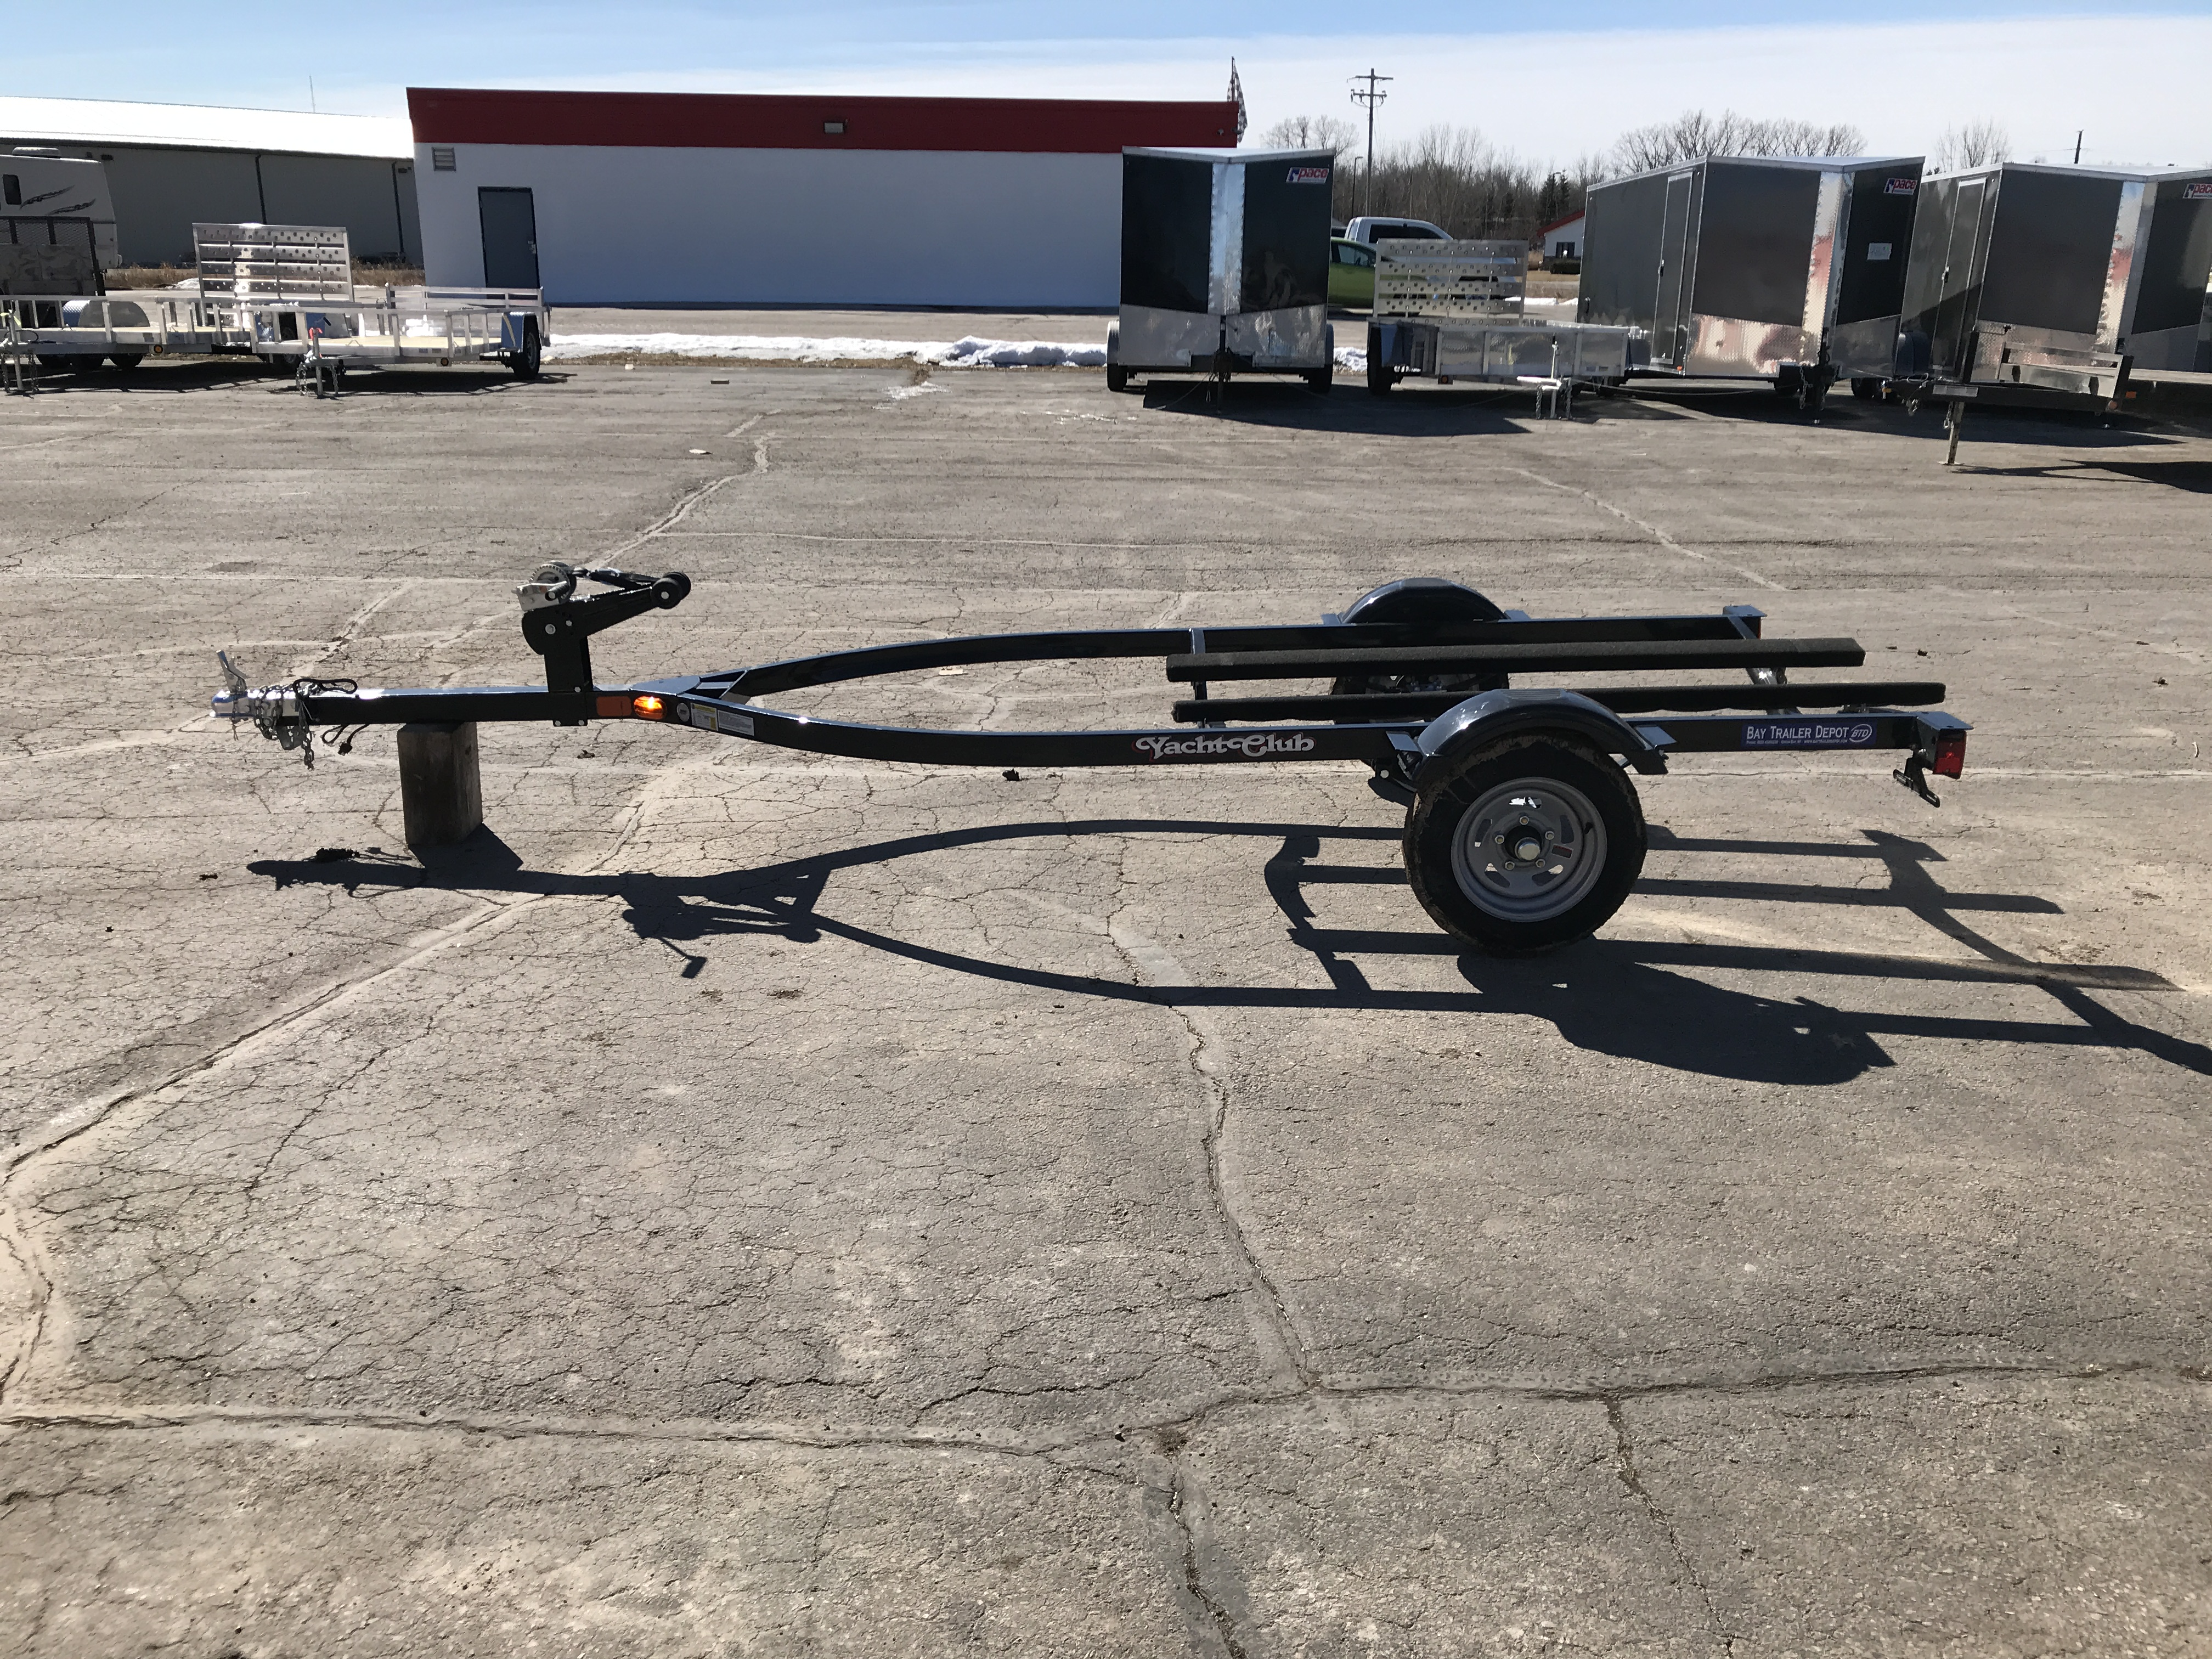 Yacht Club Personal Watercraft Trailer (Single Place) - Bay ... on